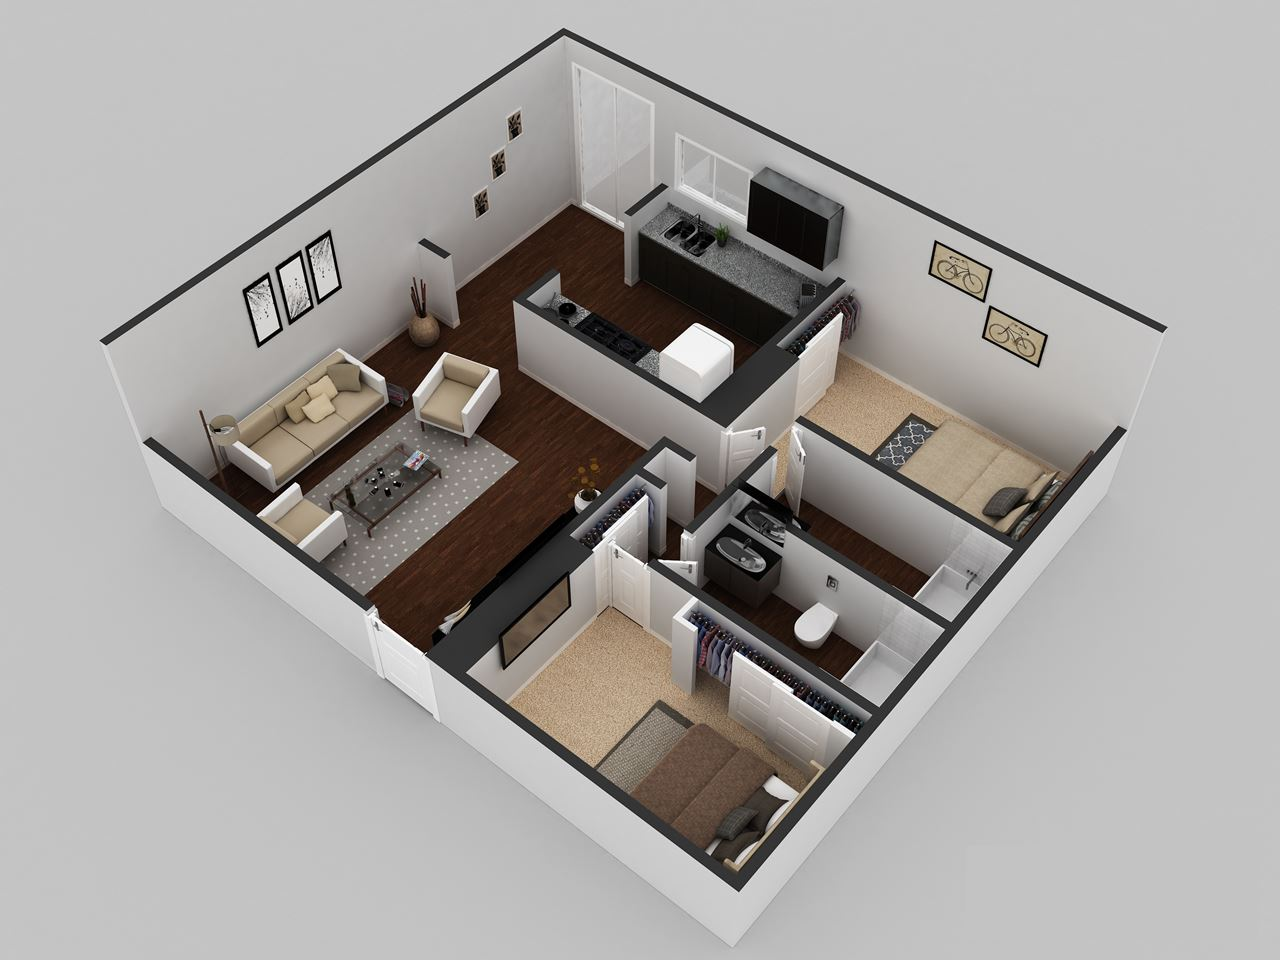 3D Floor Plan Design ARCHstudentcom